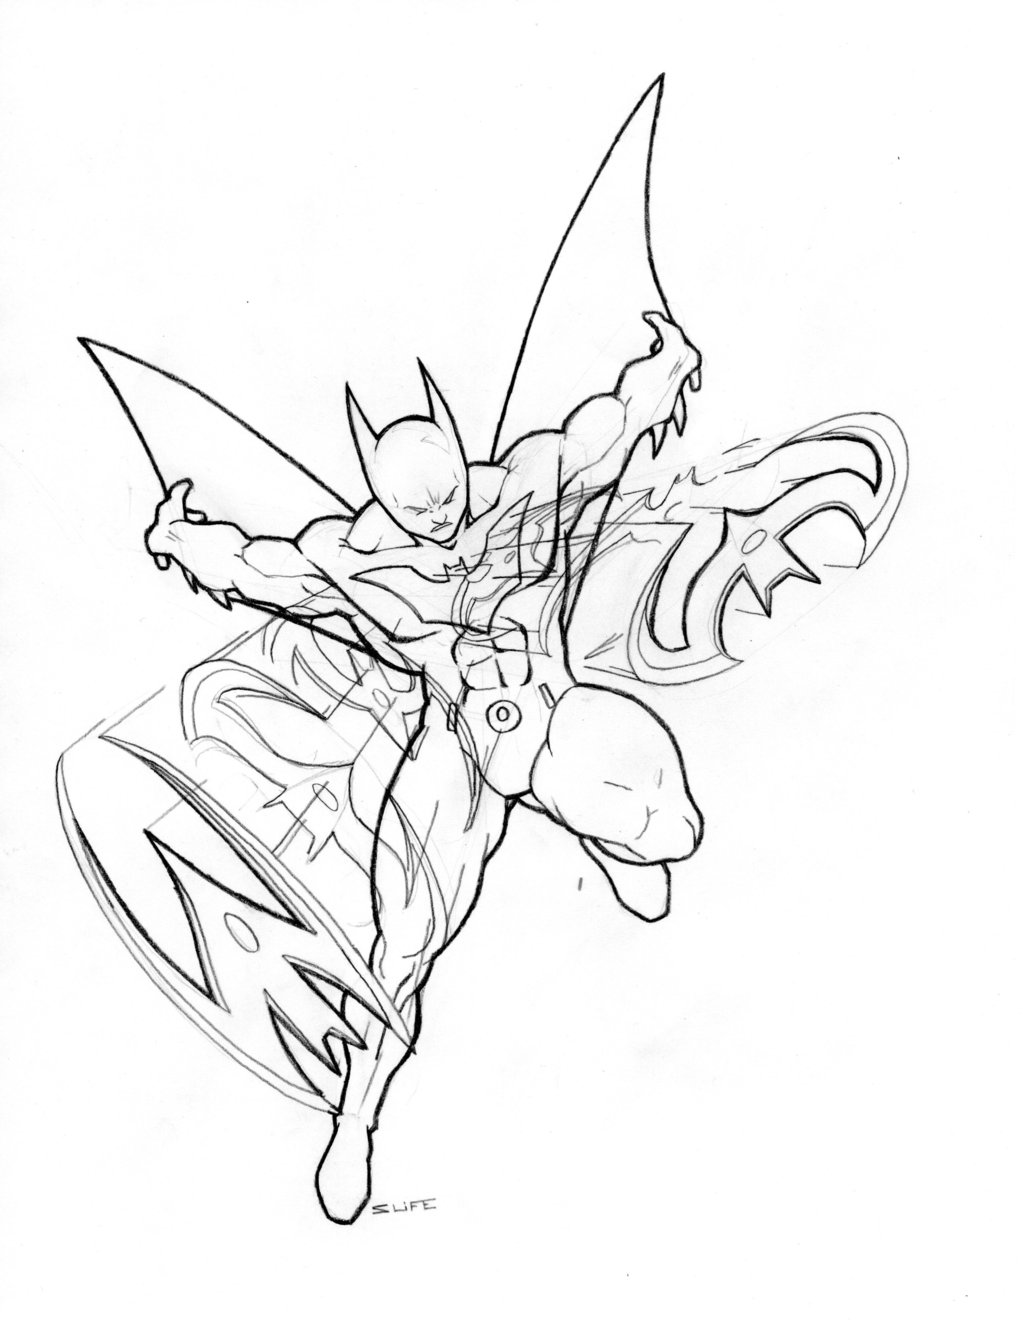 Batman Outline Drawing at GetDrawings.com | Free for personal use ...